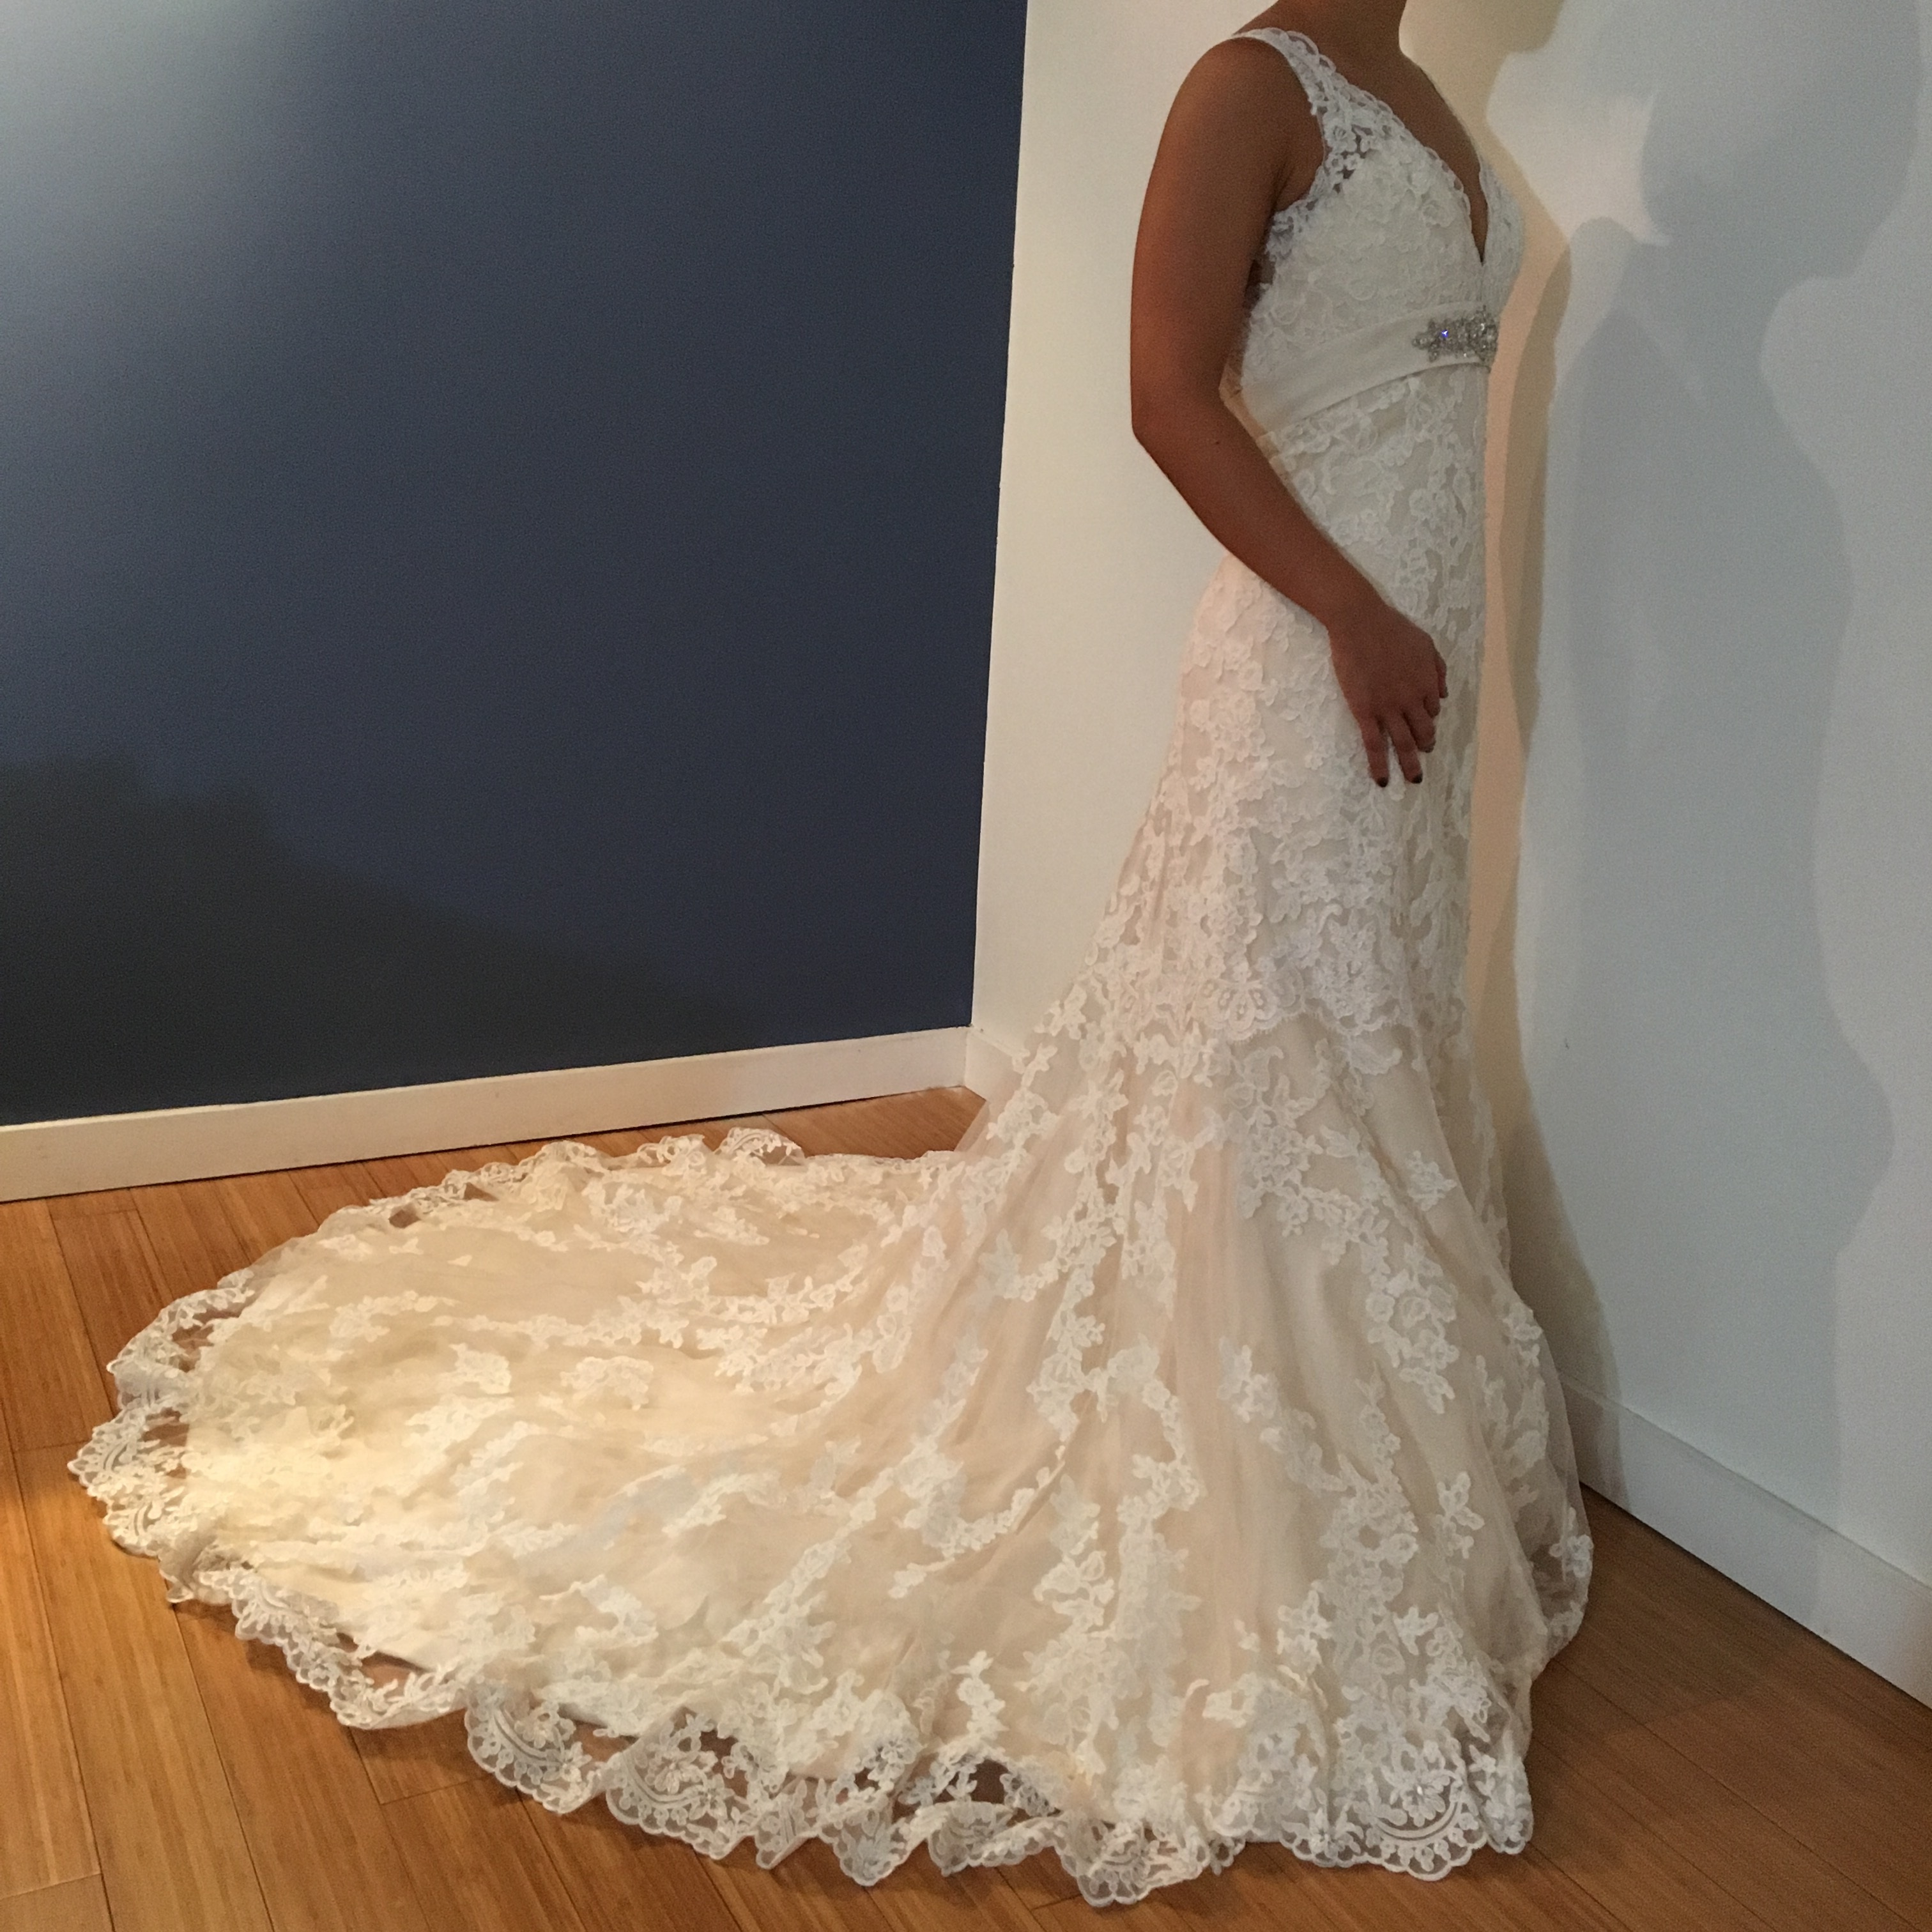 F S New Unworn Unaltered Allure Bridal 8634 Light Gold Ivory Lace Wedding Dress The Knot Community